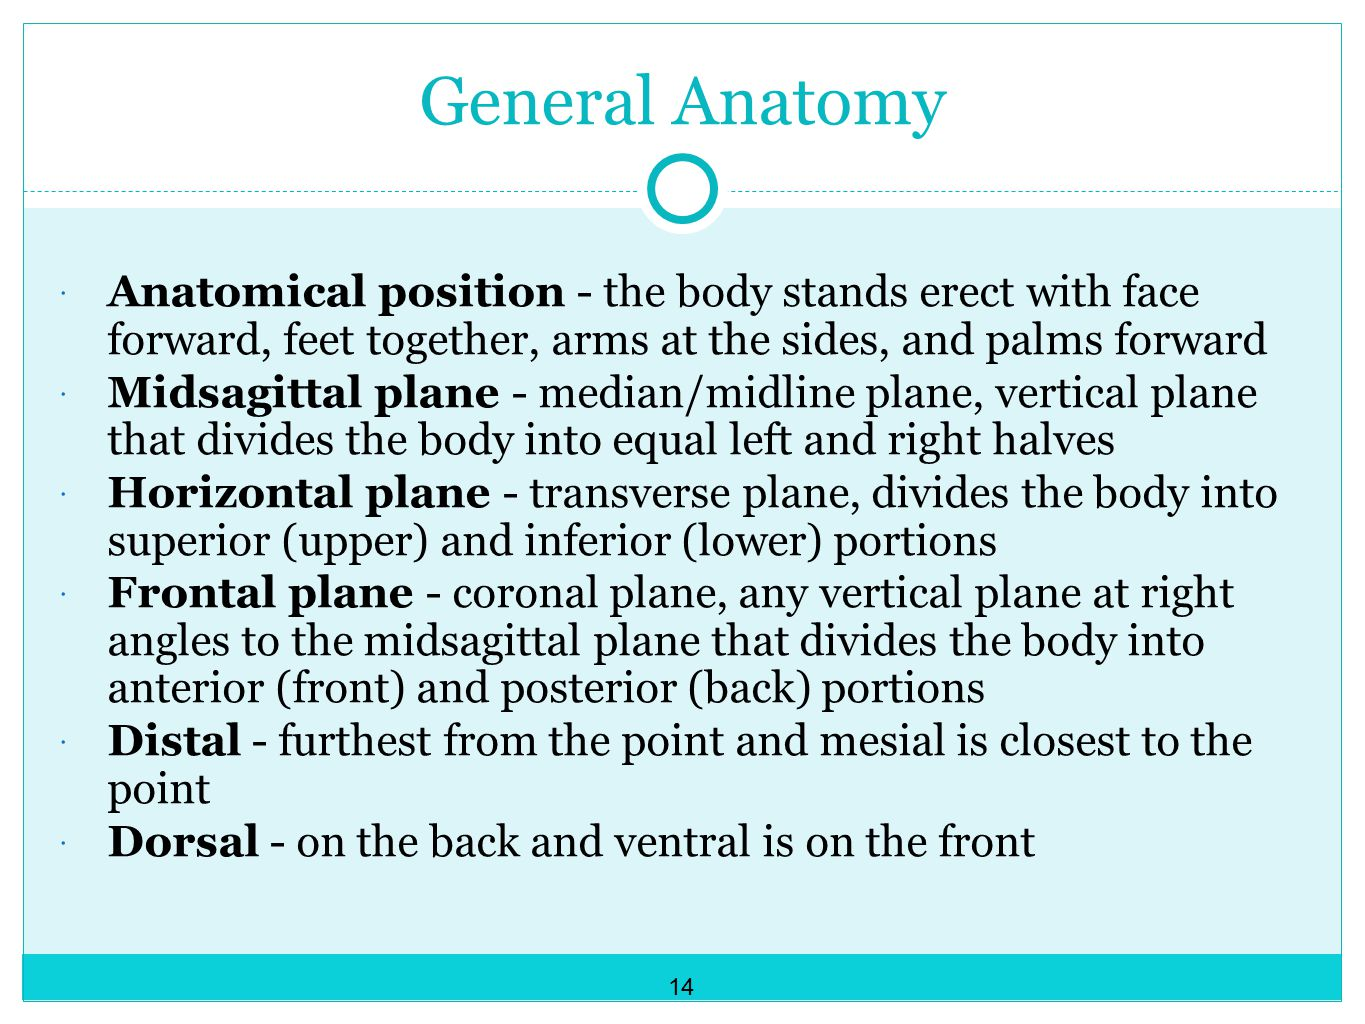 General Anatomy Anatomical position - the body stands erect with face forward, feet together, arms at the sides, and palms forward.